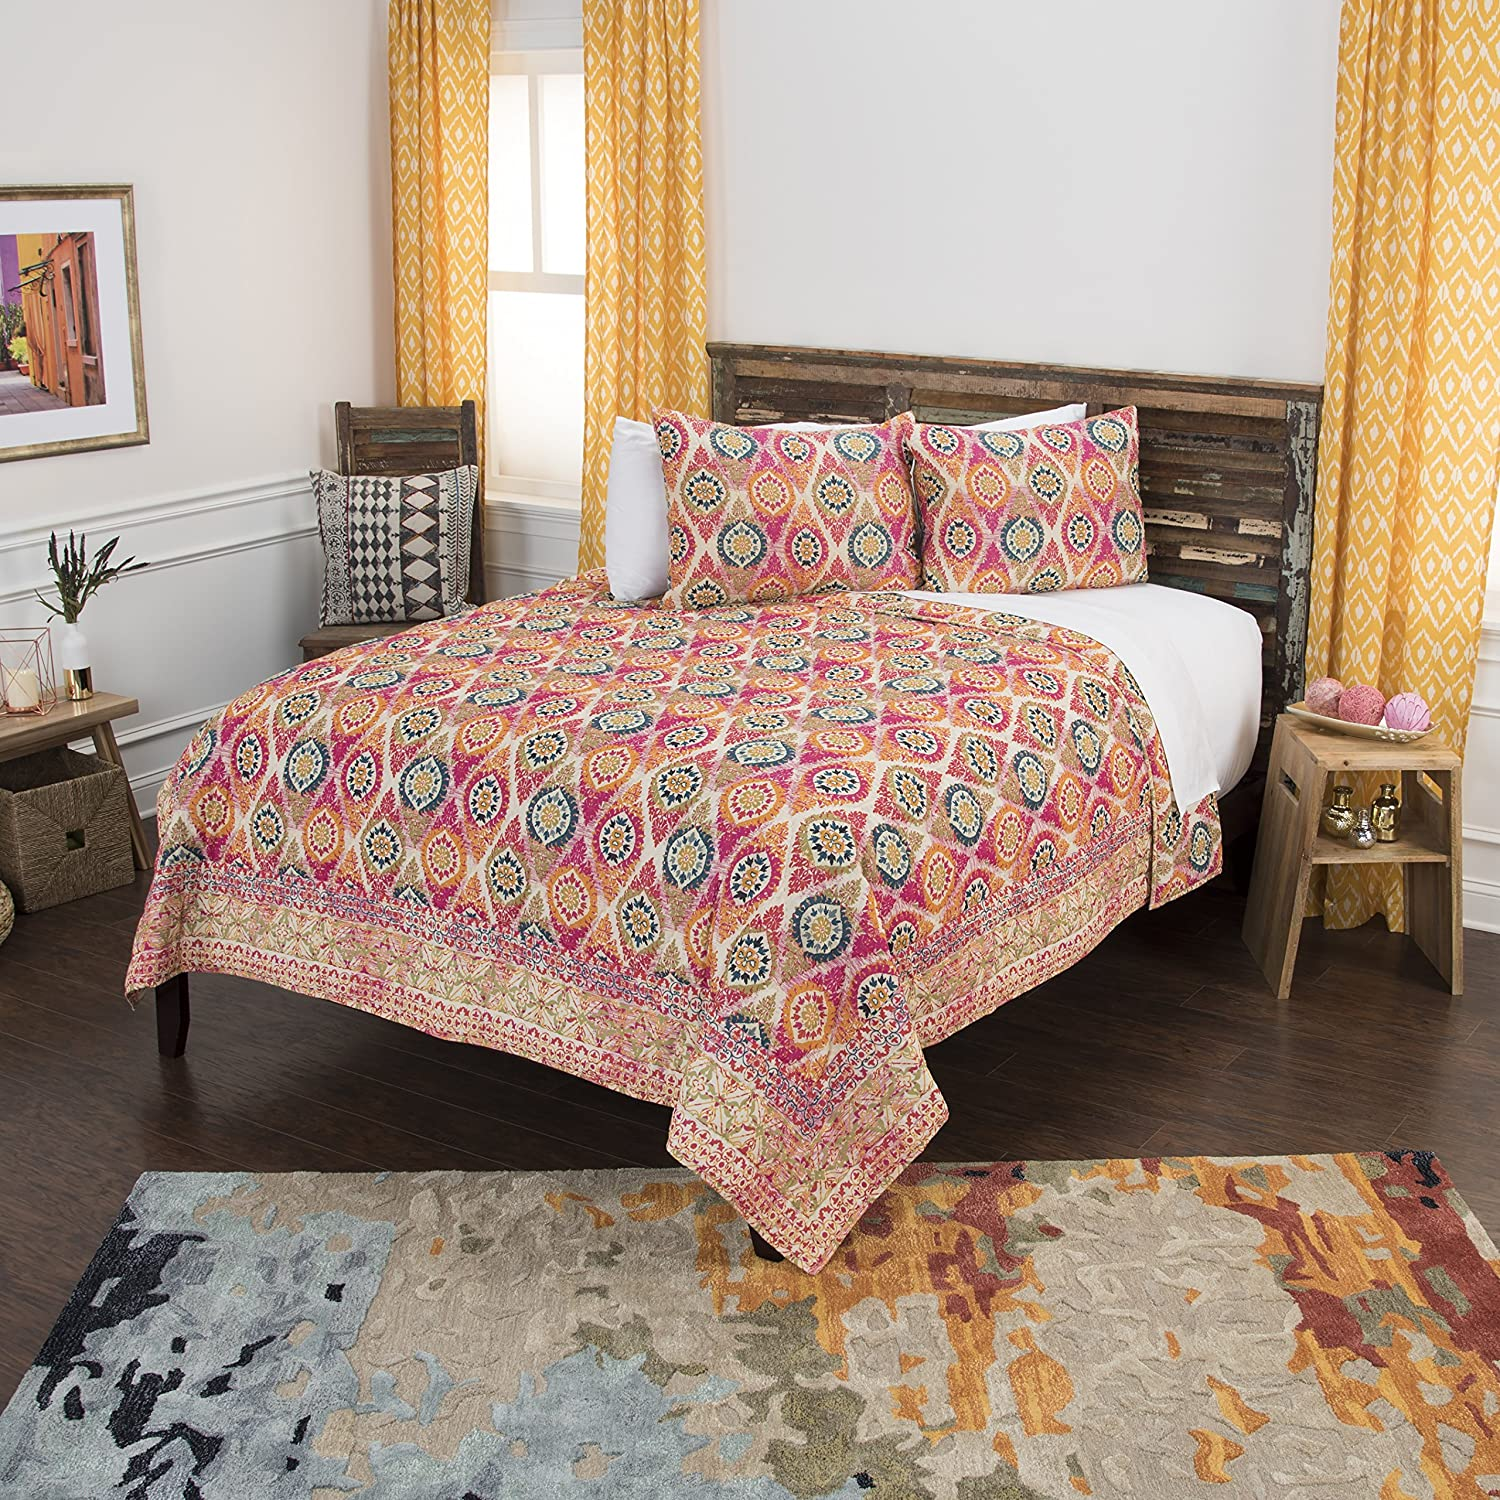 Rizzy Home Maddux Place Serendipity Geometric 2 Piece Quilt Set, Twin X-Large, Pink